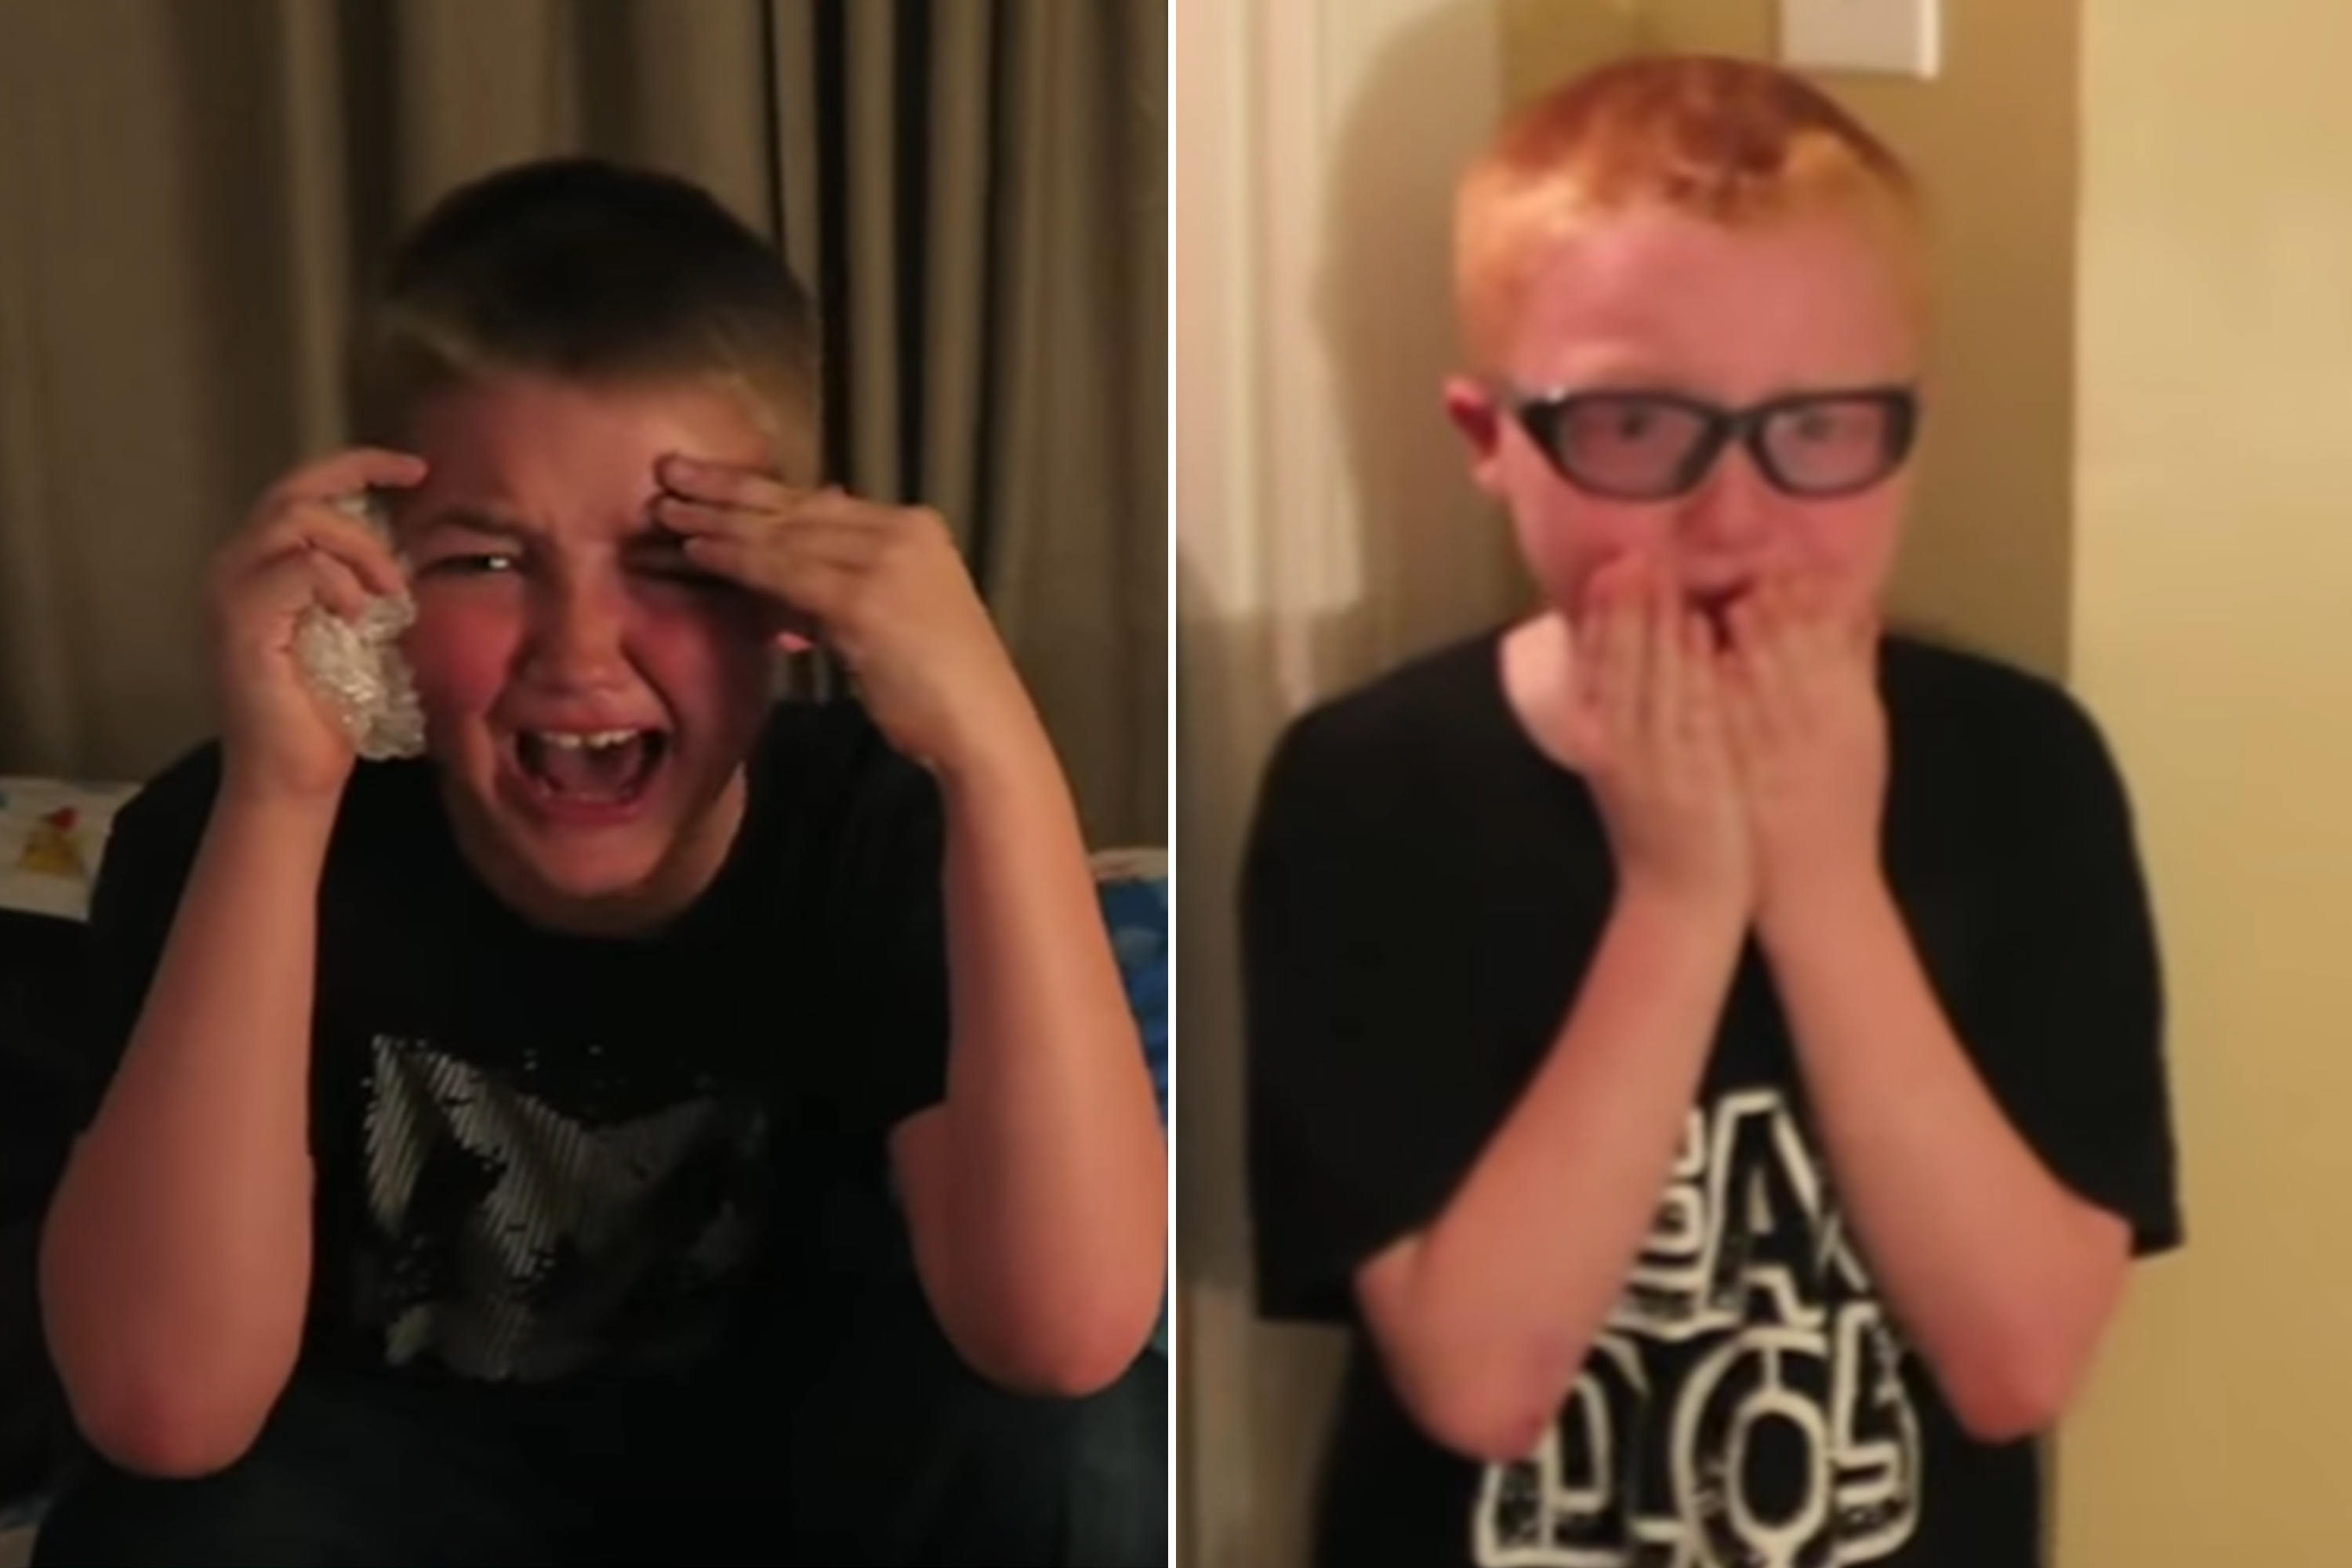 Diabolical Parents Blasted For Cruel Pranks That Make Their Kids Cry